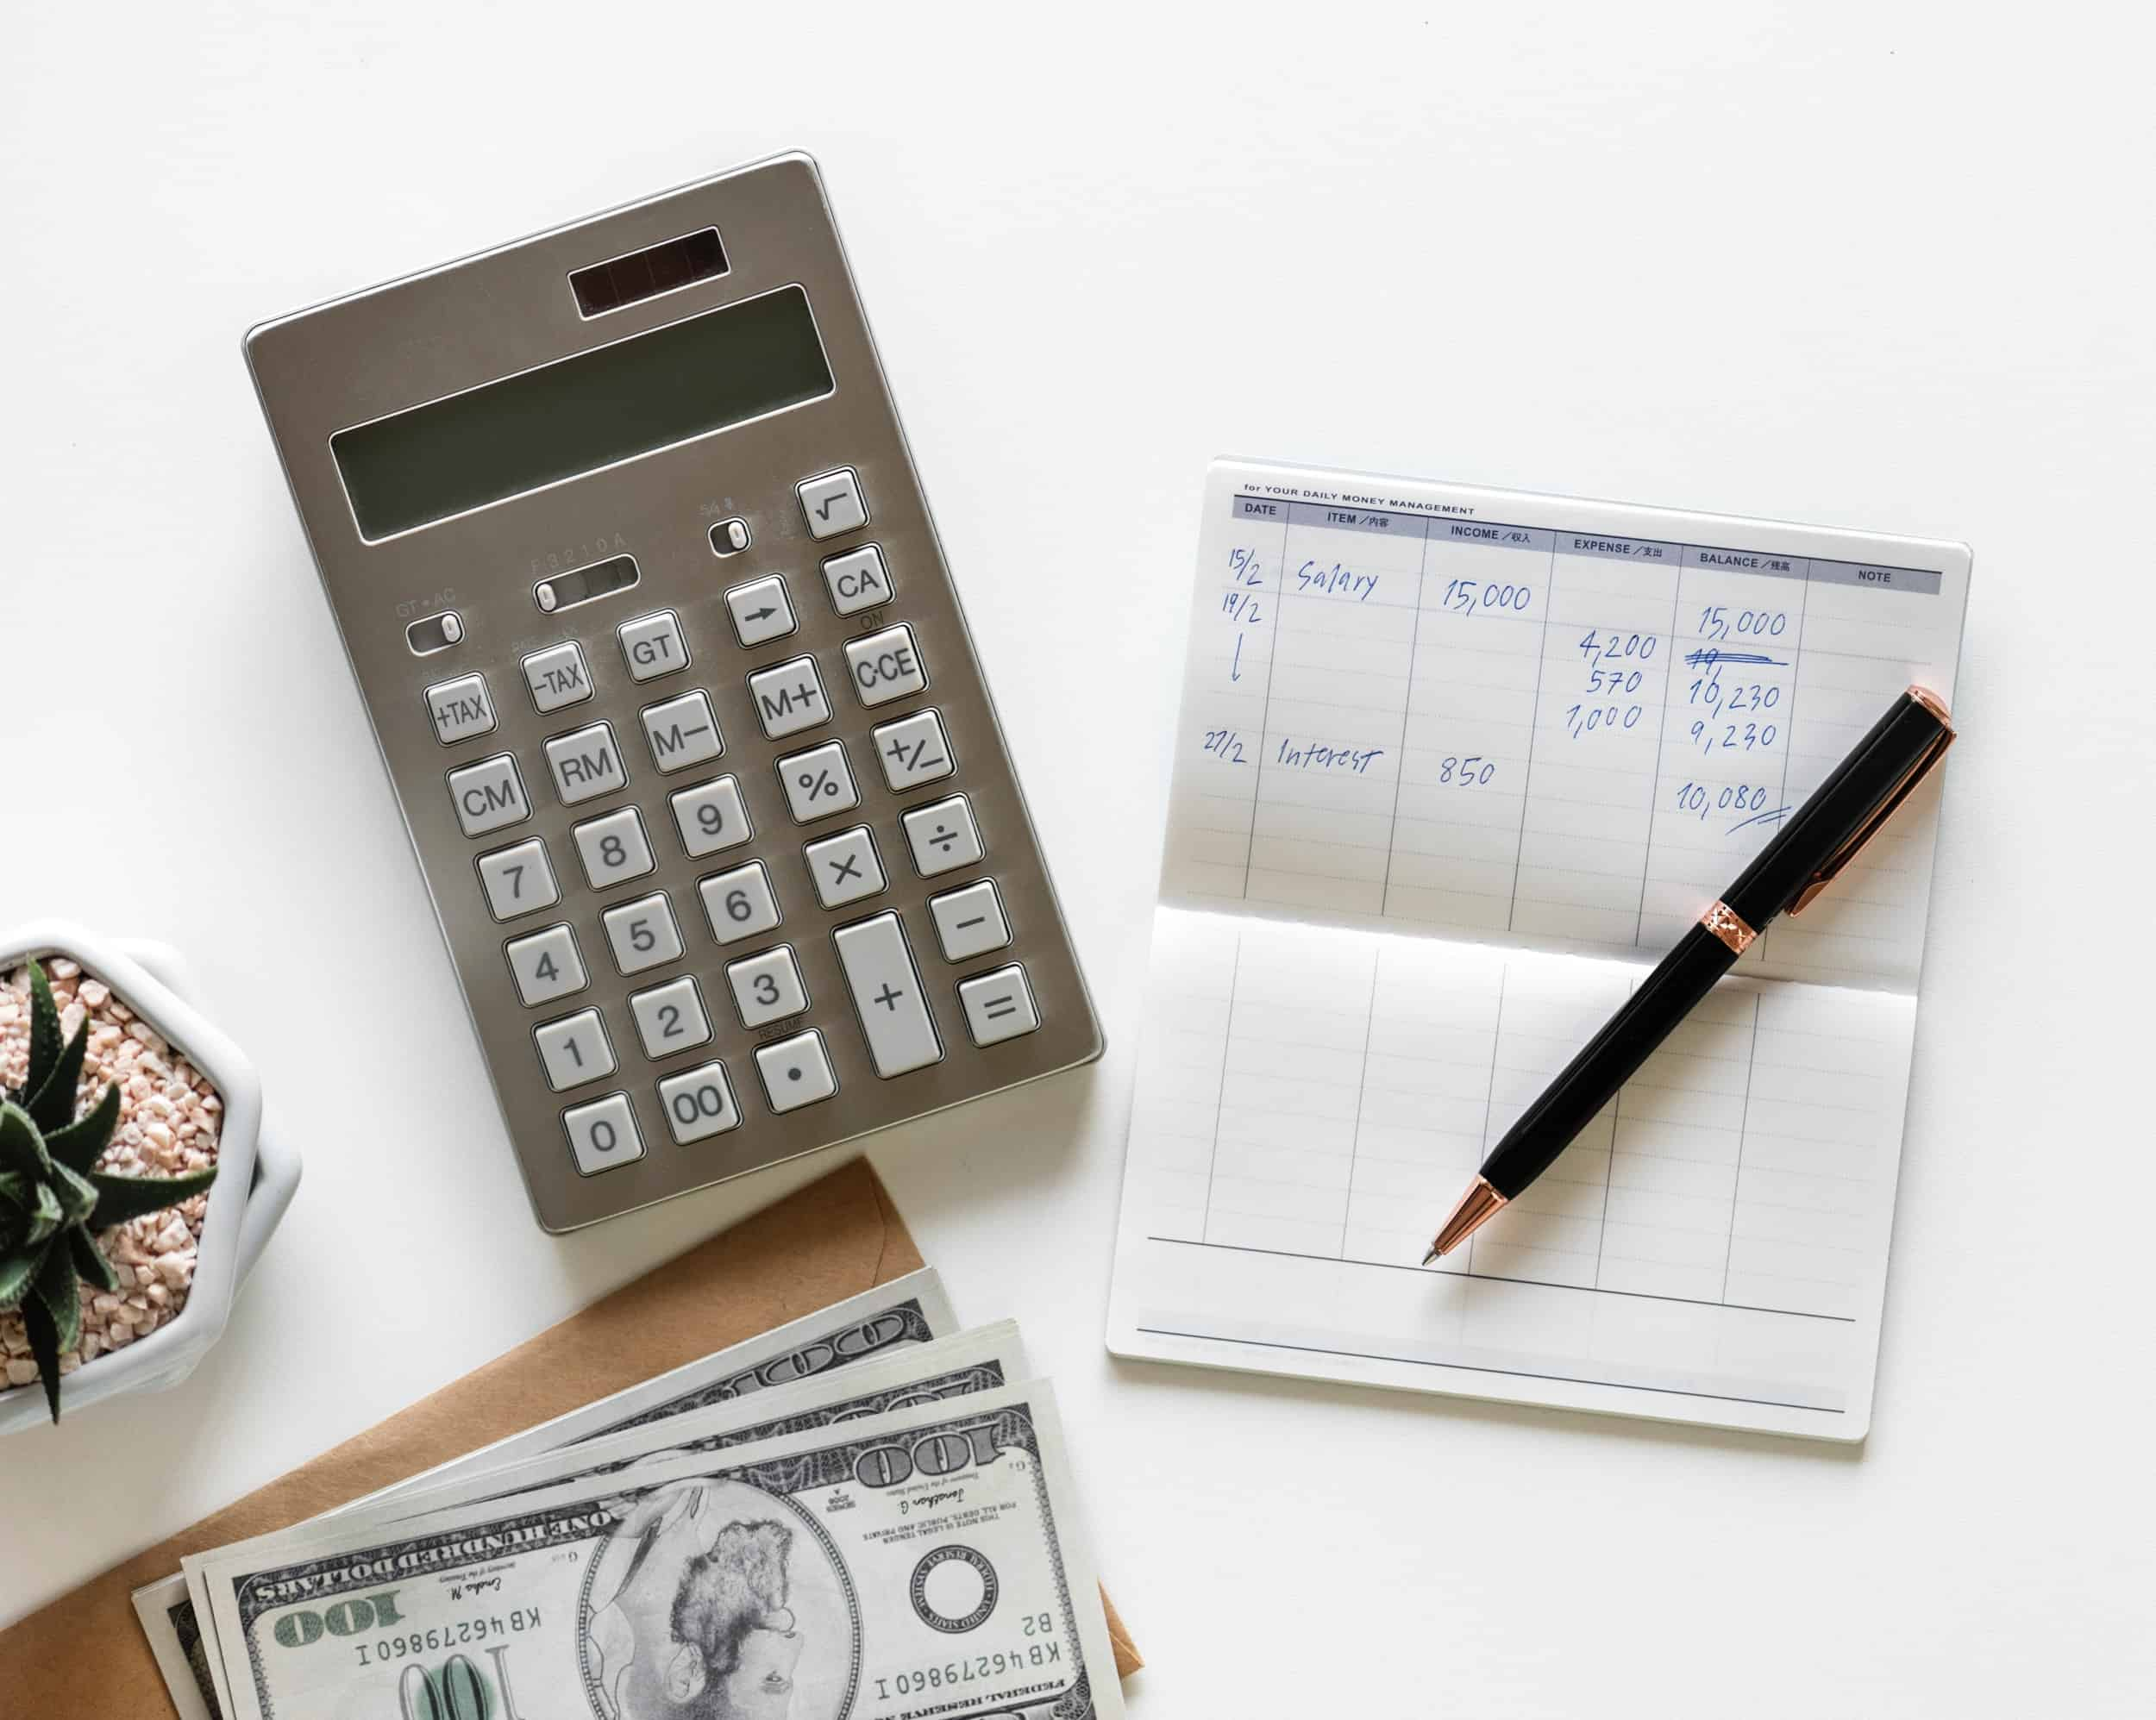 millennials lag in paying medical bills - plusfour, inc.